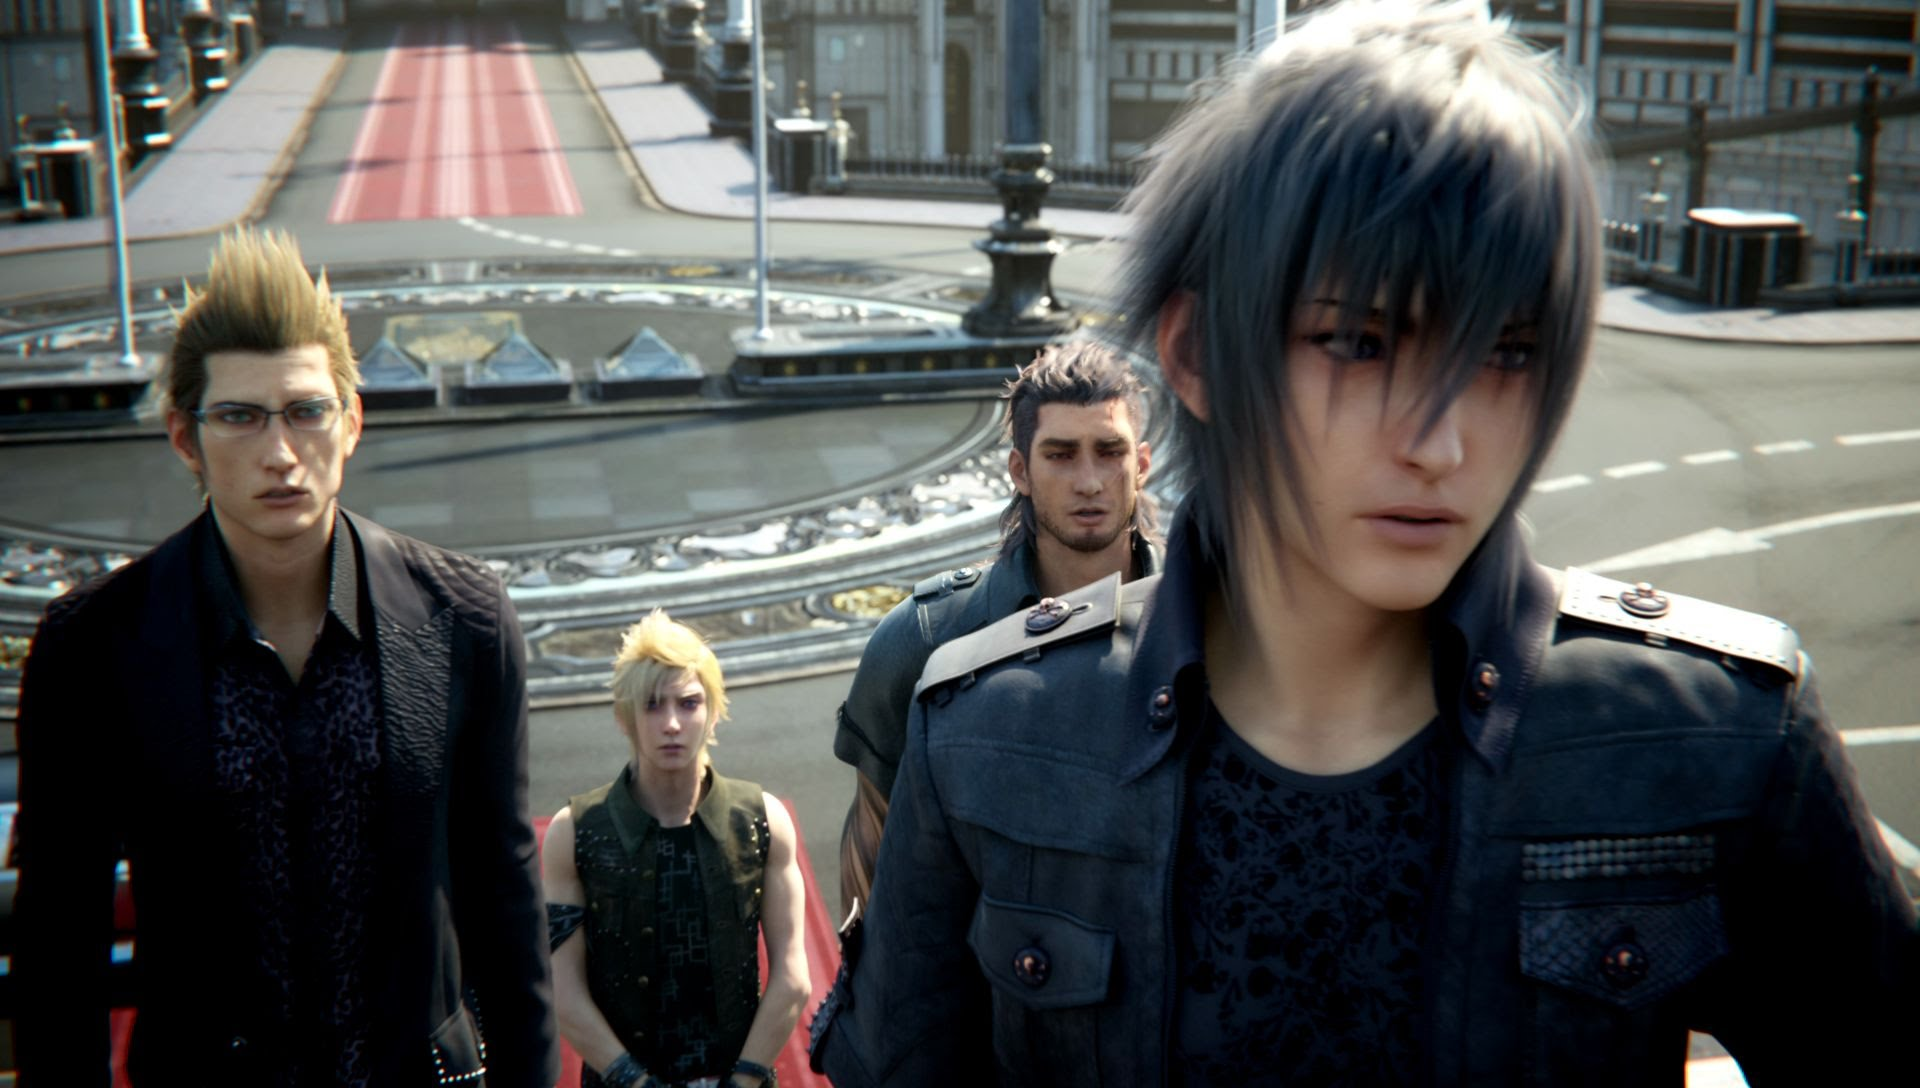 Final Fantasy Xv Director Now Says There Are No Plans To Bring